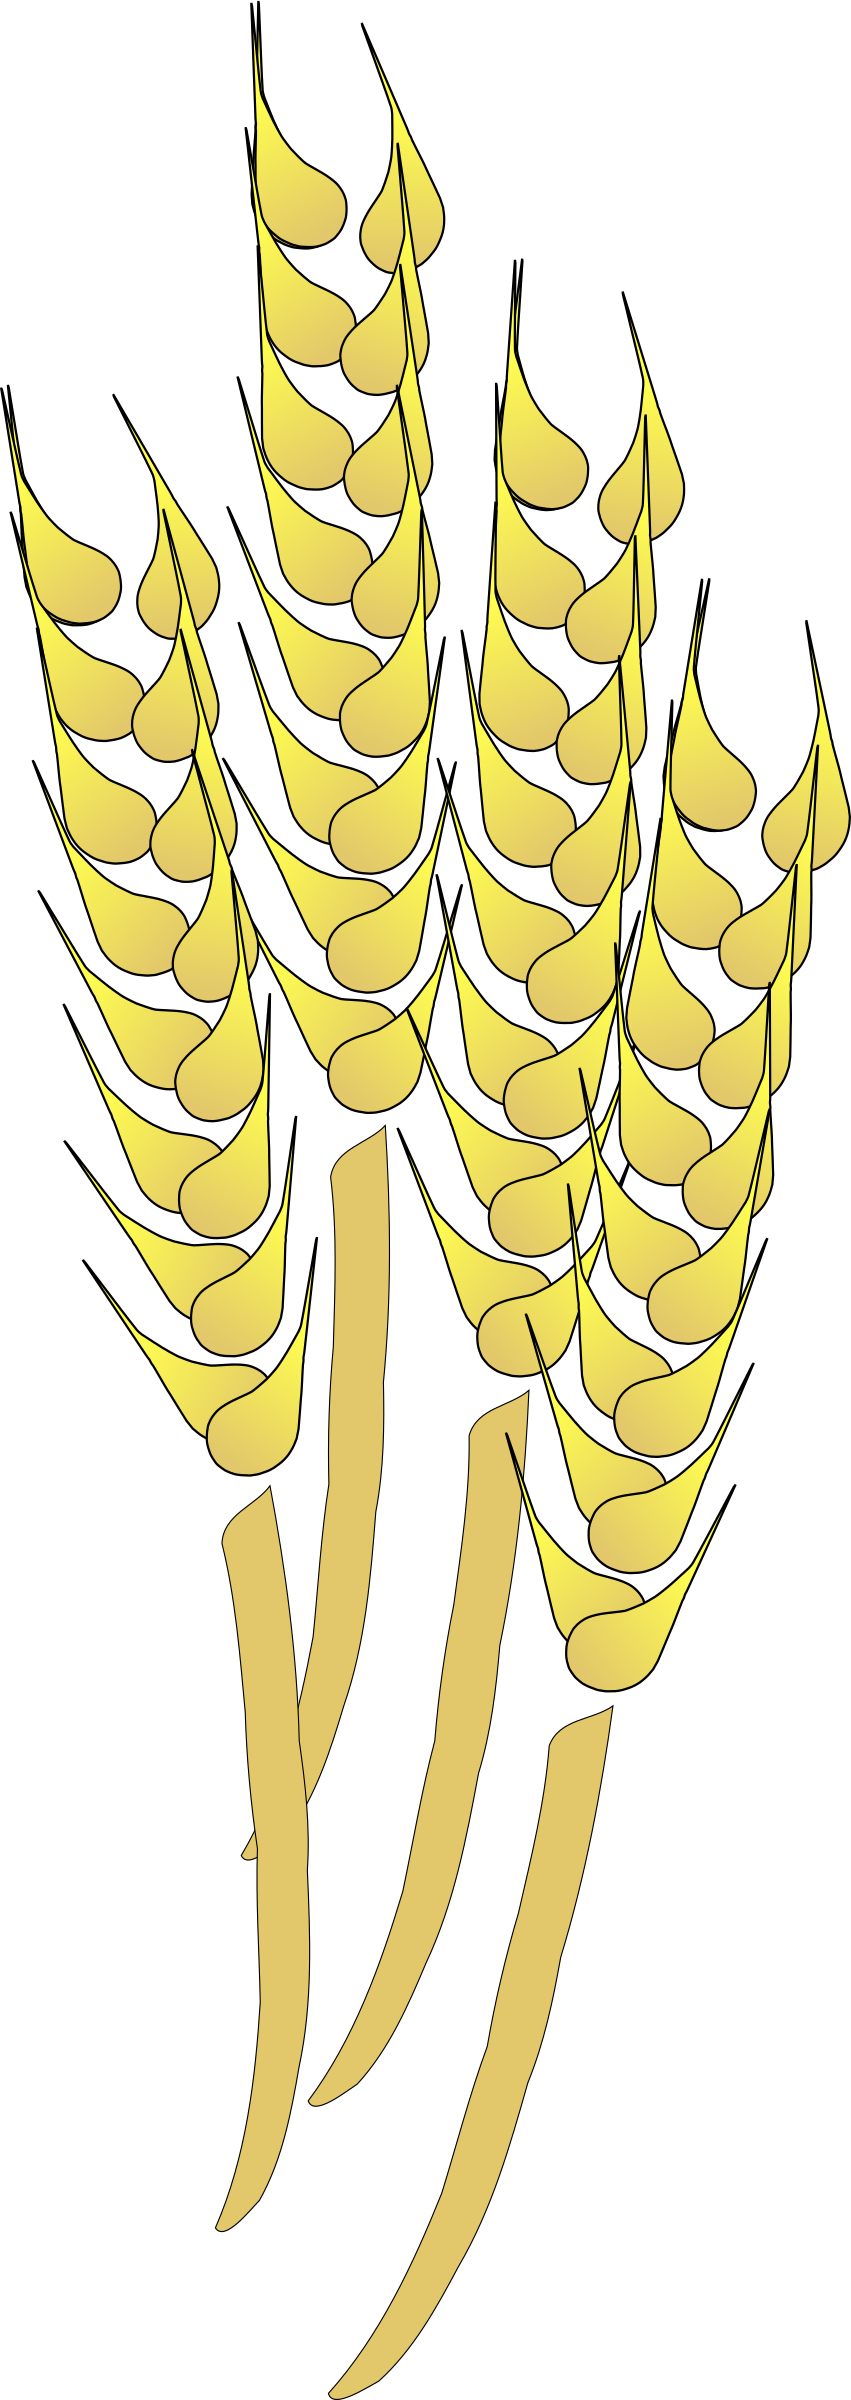 Big image png. Wheat clipart wheat harvest